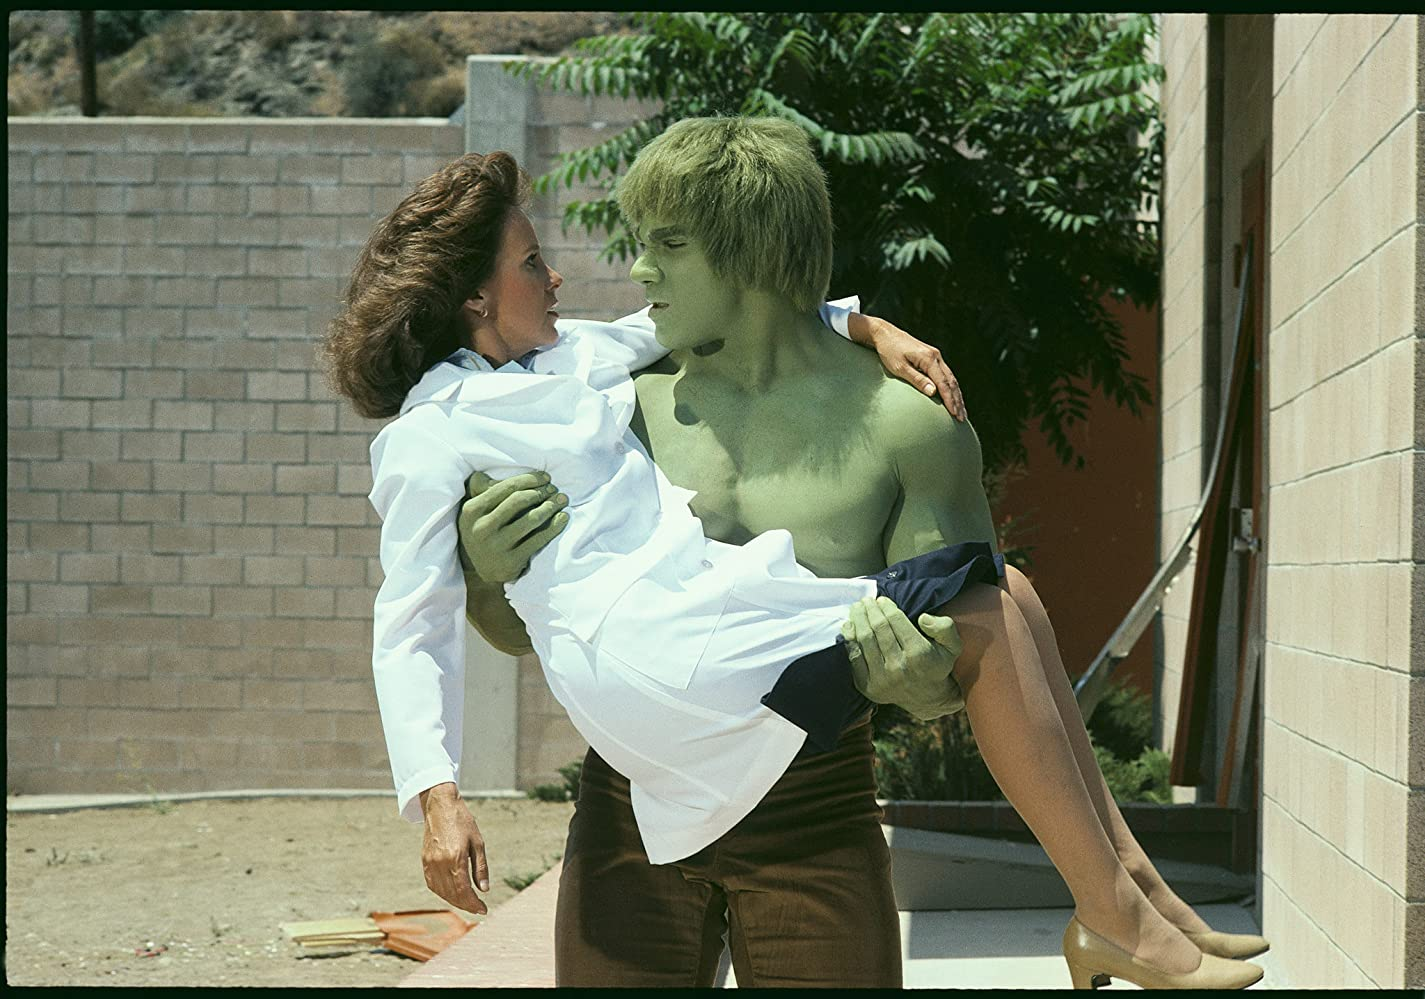 Lou Ferrigno and Jane Merrow in The Incredible Hulk (1977)